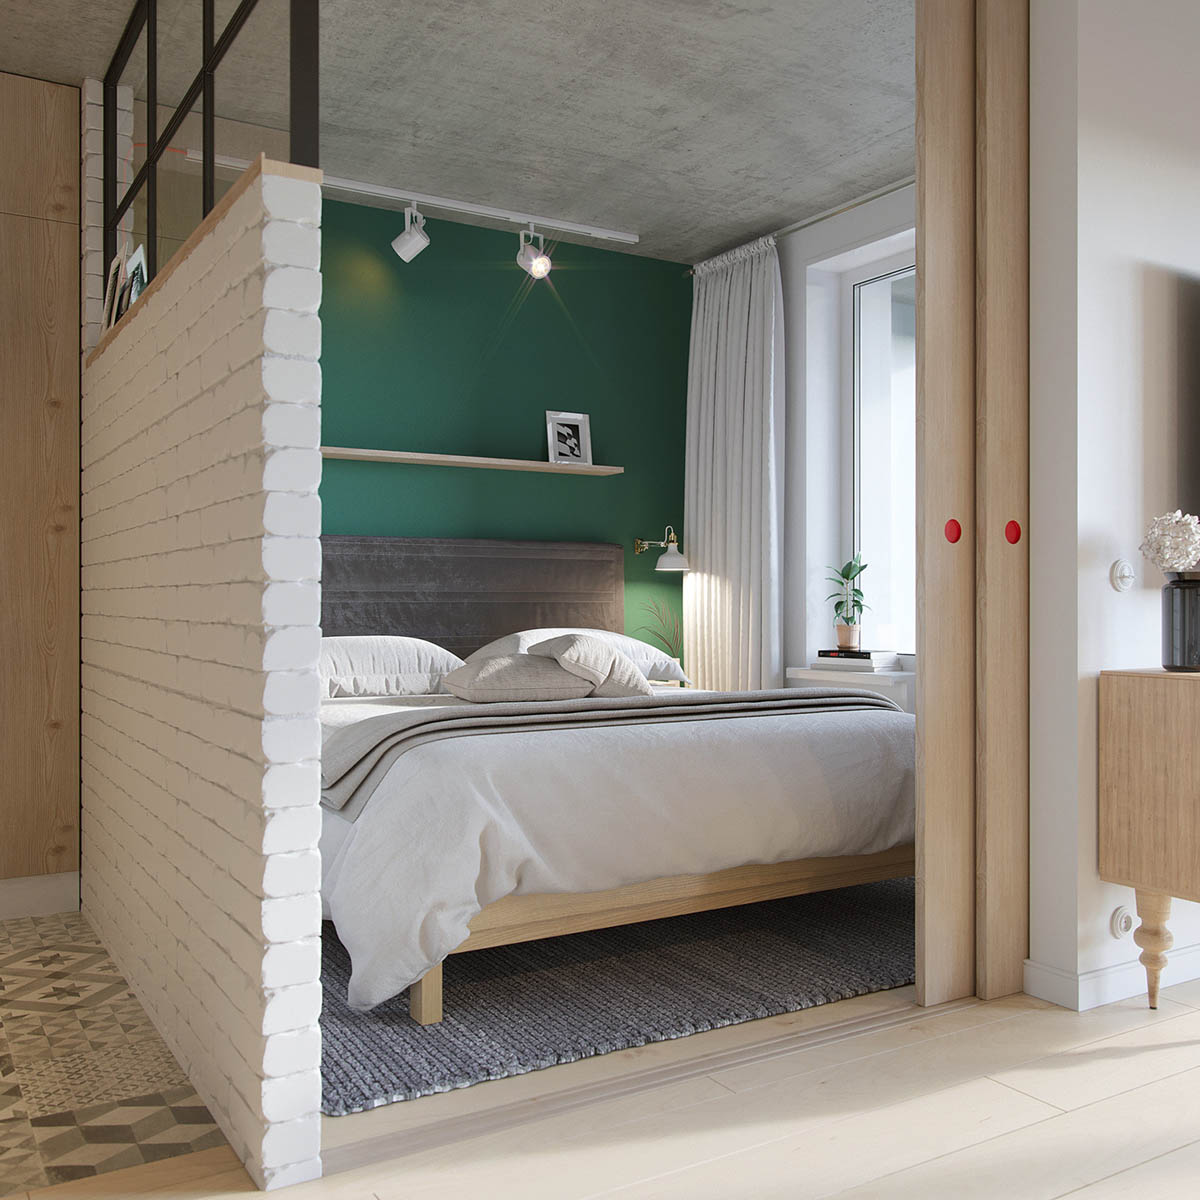 Grey Rug And Headboard Exposed Brick Wall Industrial Bedroom - Industrial russian interior with quirky colour twists including floor plans